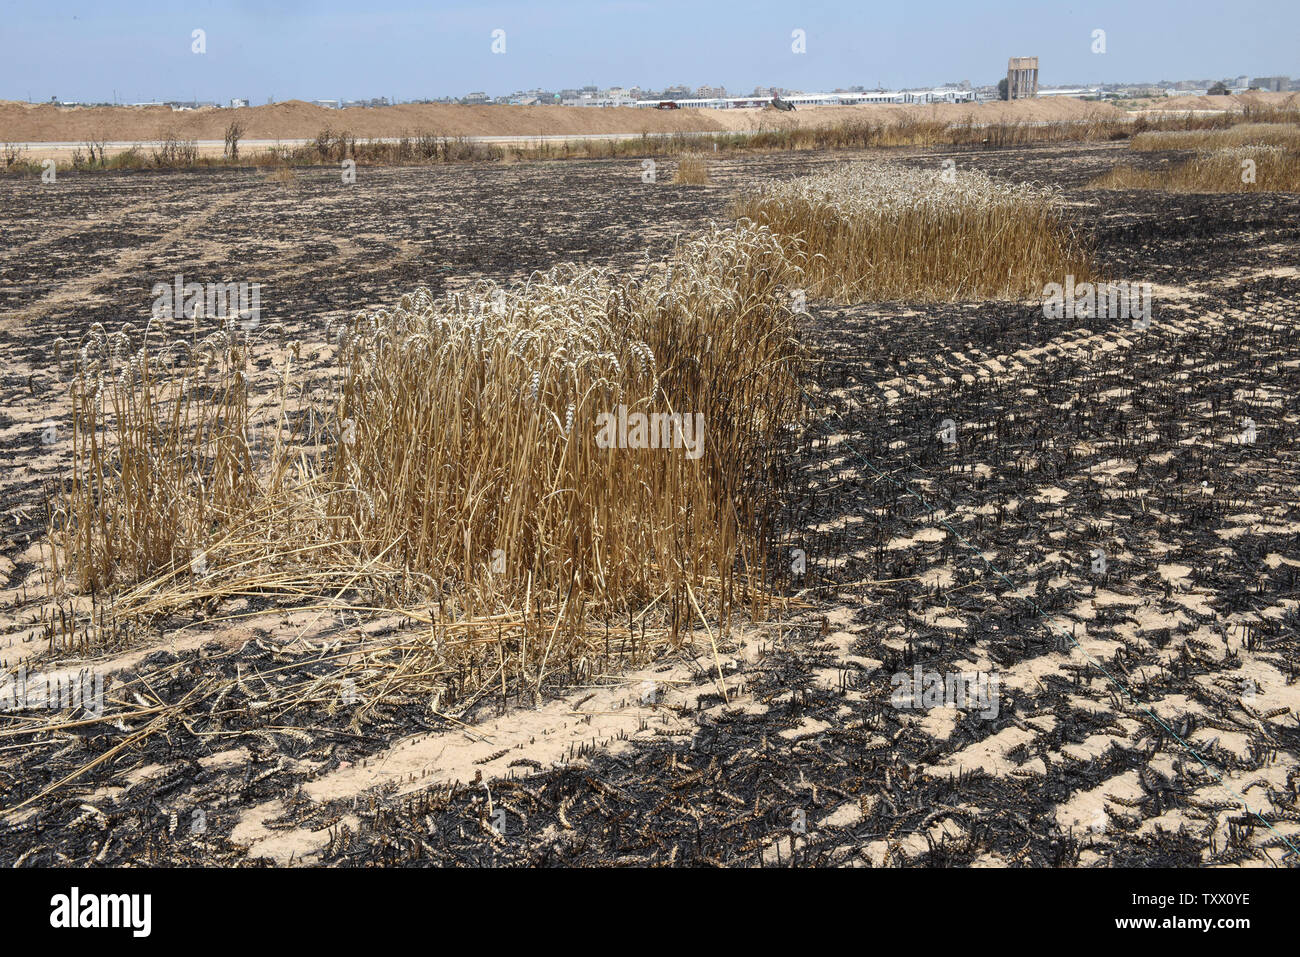 Wheat fields in Kibbutz Nahal Oz, along the the Israeli- Gaza border, are burned from fires started by kites sent by Palestinian protesters in Gaza, June 5, 2018. Over 600 kites have been flown into Israel from the Gaza Strip, destroying 9000 square meters of crops and forests.    Photo by Debbie Hill/UPI - Stock Image